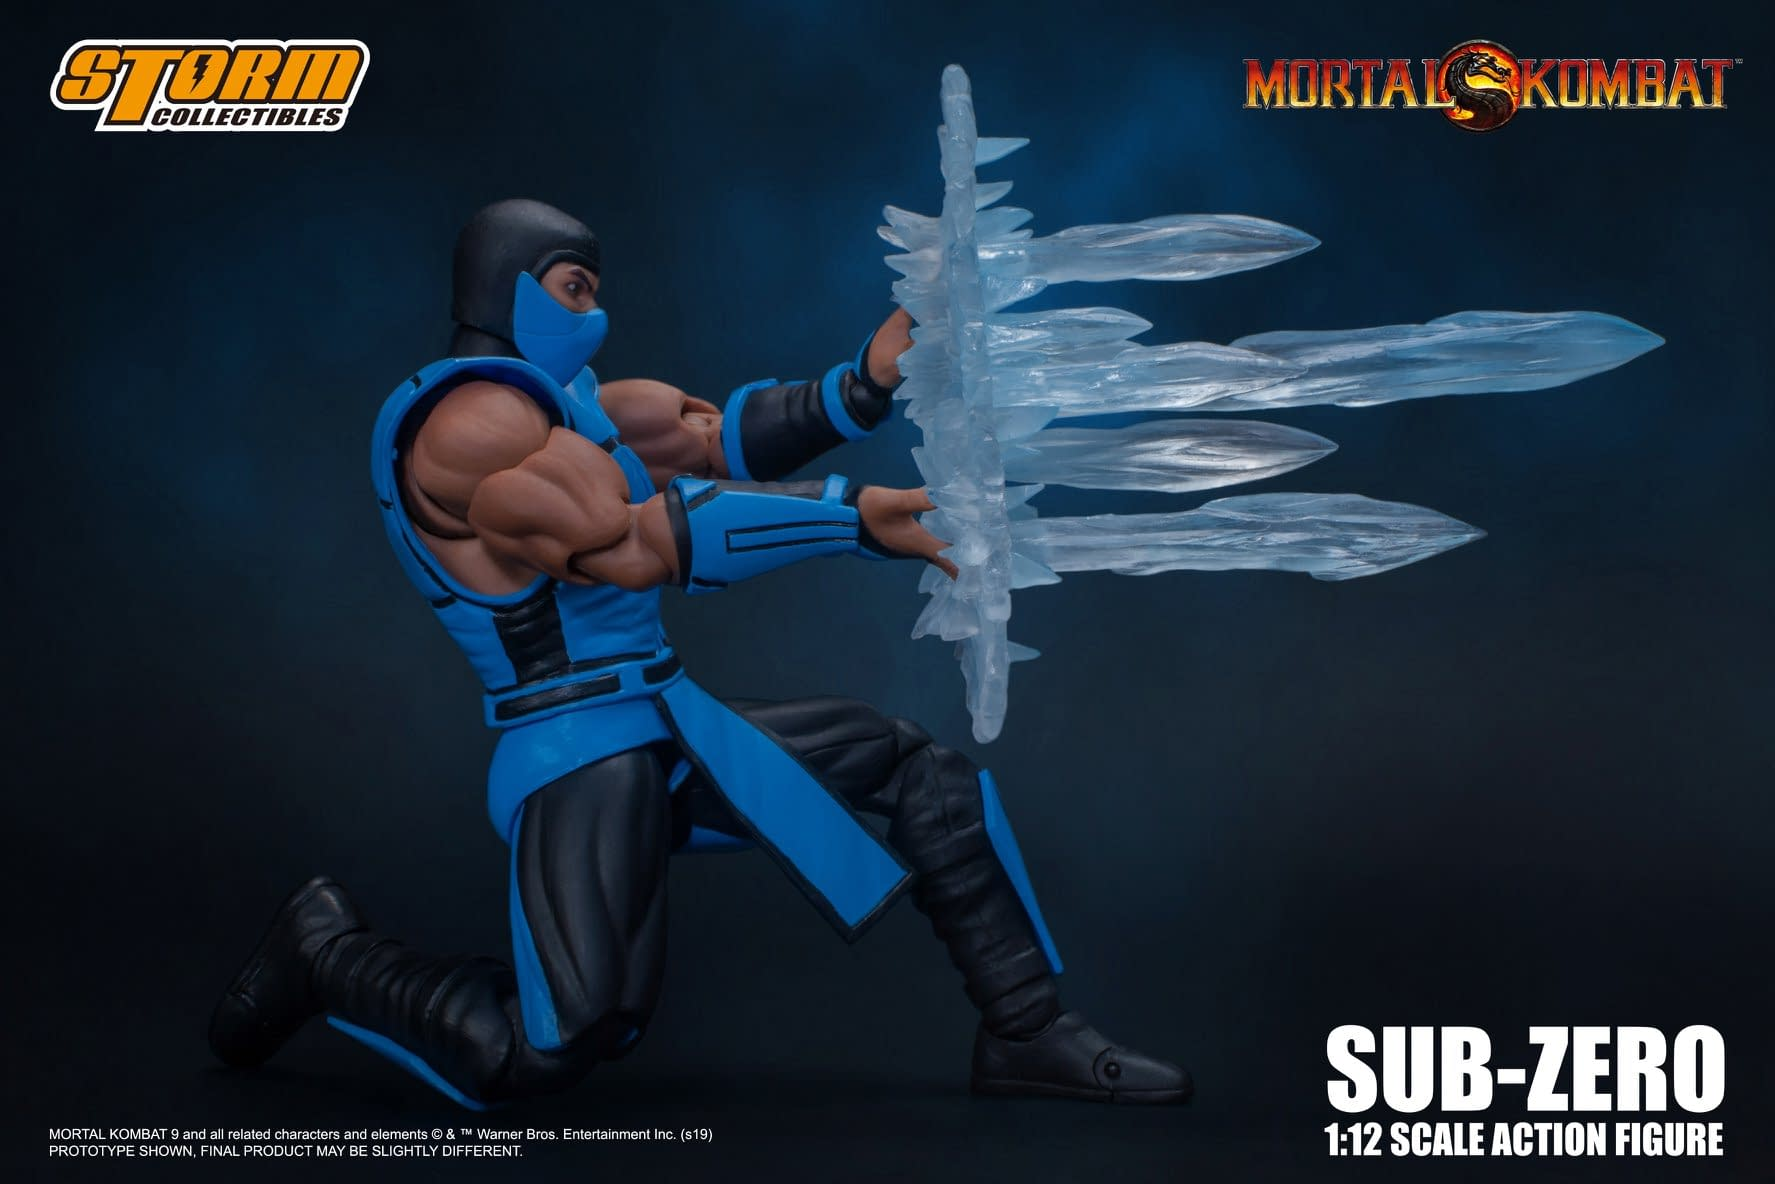 Subzero Brings a Blizzard with New Storm Collectibles Figure